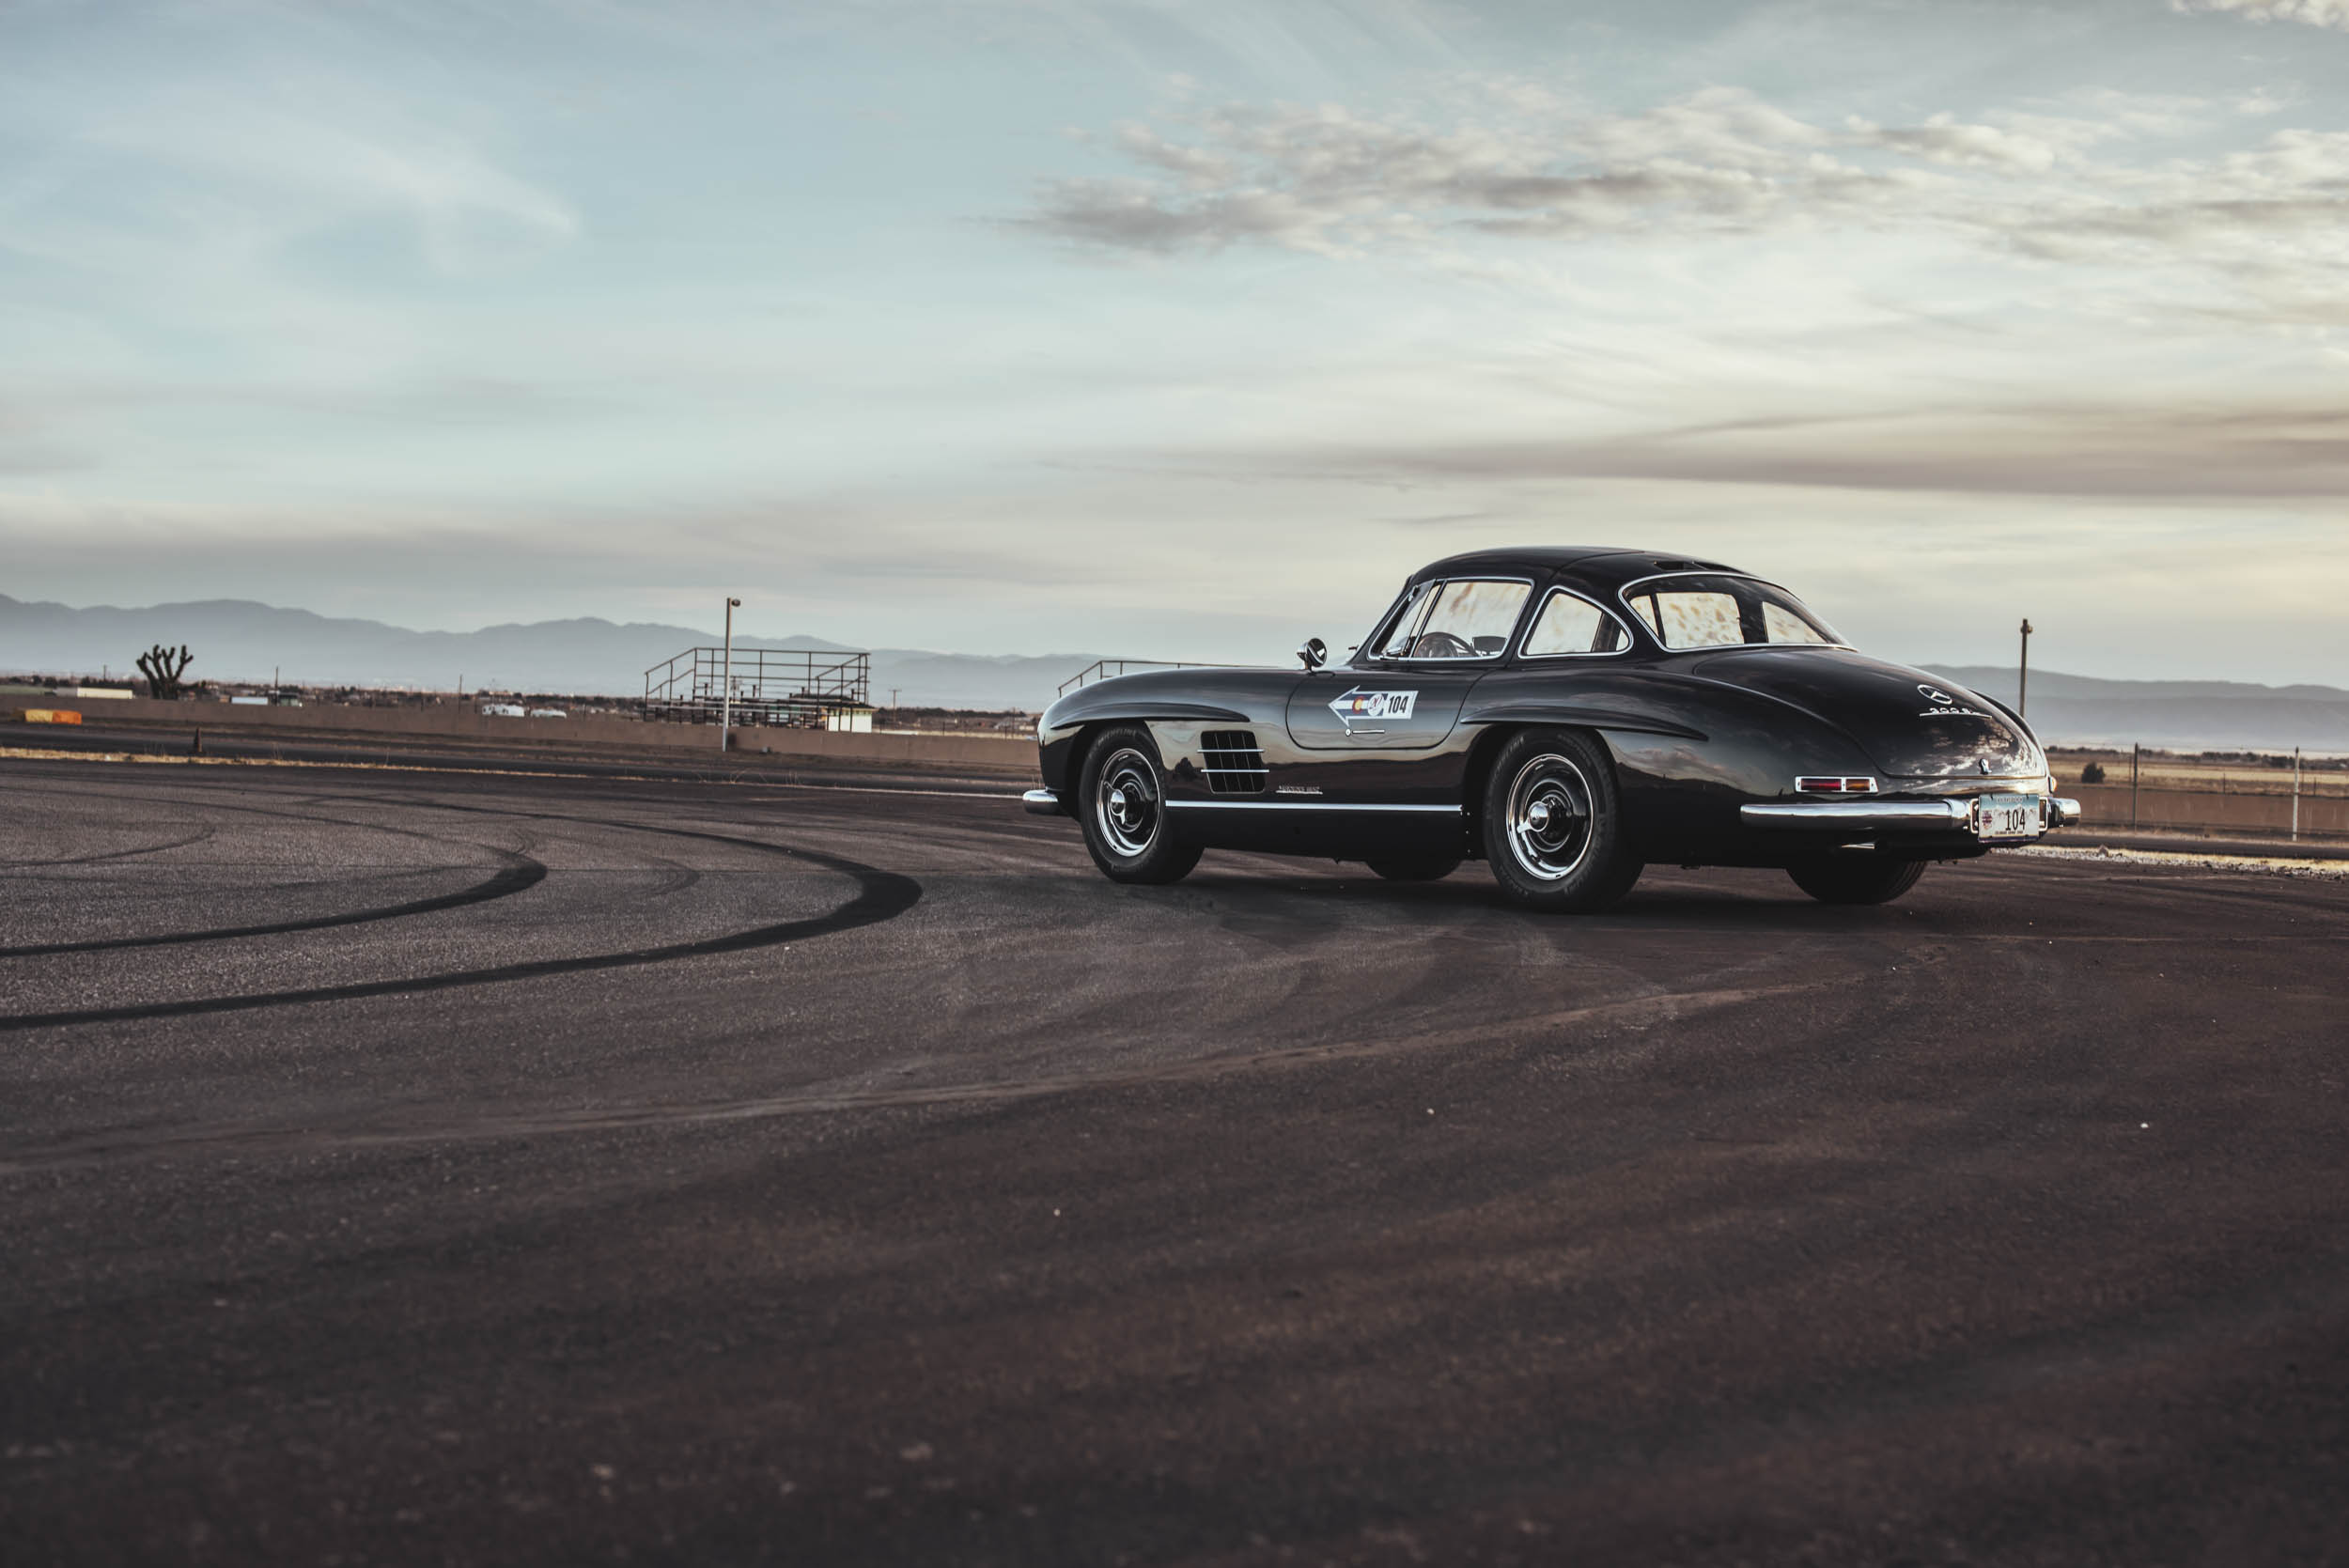 1955 Mercedes-Benz 300 SL Gullwing rear 3/4 driving on the track